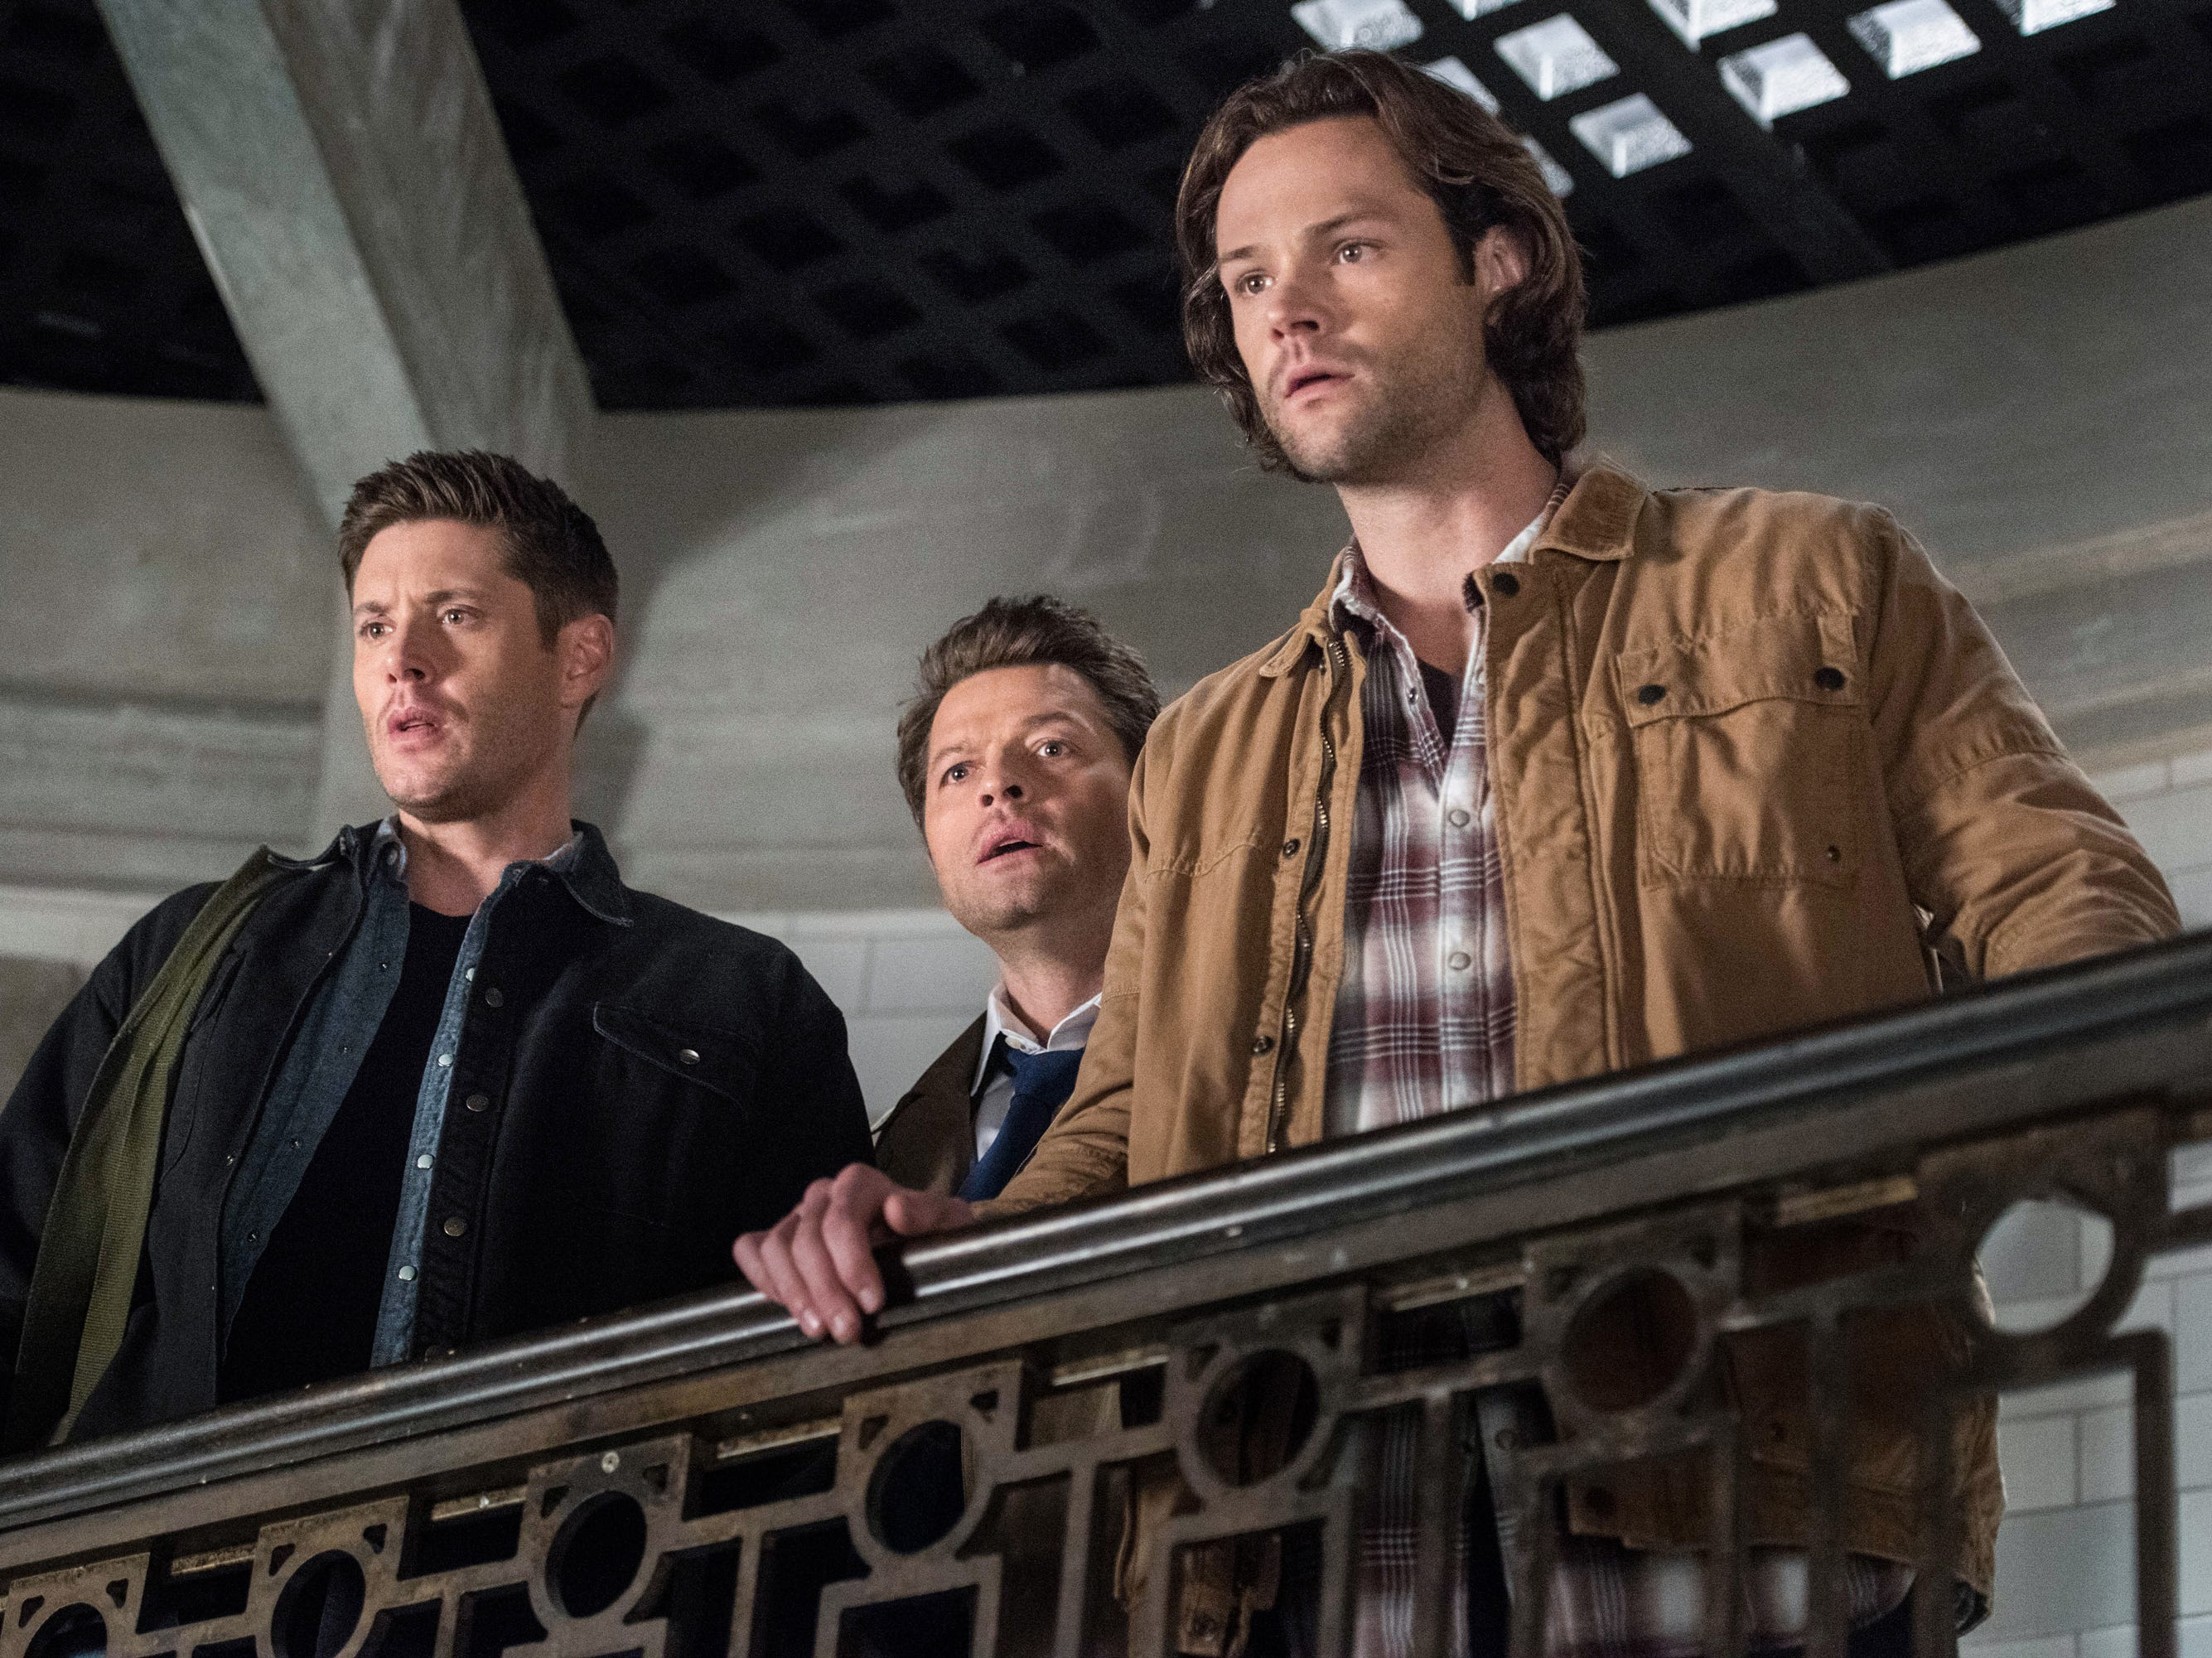 """Supernatural"" has become a stalwart on CW with its 14th season debuting this month. The series follows two brothers -- Sam and Dean Winchester (Jared Padalecki and Jensen Ackles) -- who hunt demons and ghosts with the help of the angel Castiel (Misha Collins)."